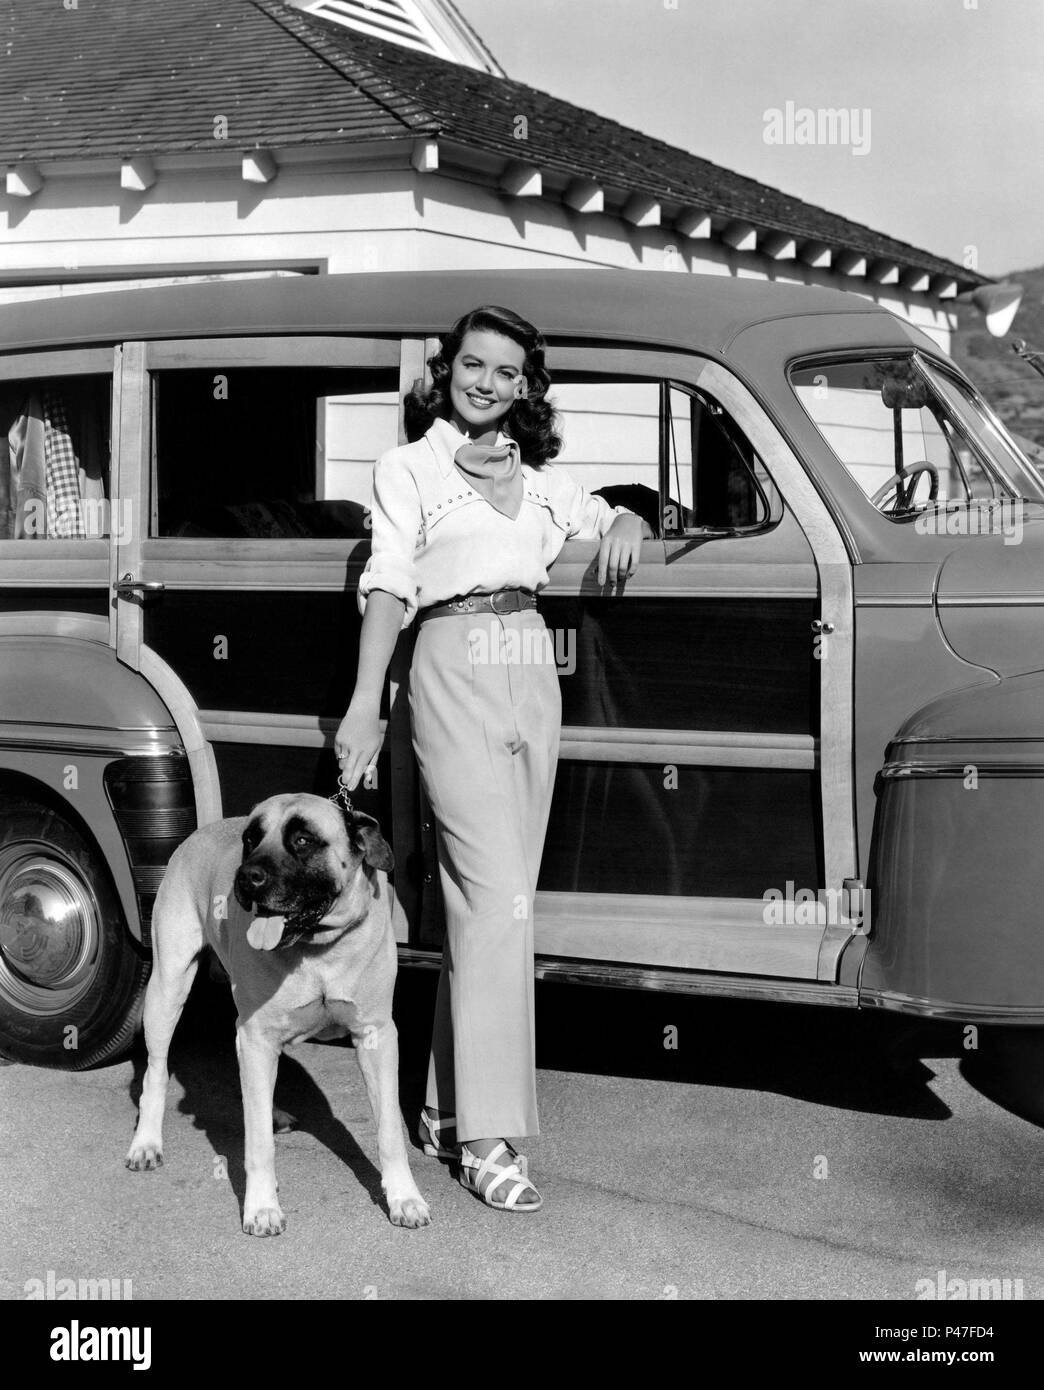 ACTRESS DOROTHY MALONE 8X10 PUBLICITY PHOTO OP-446